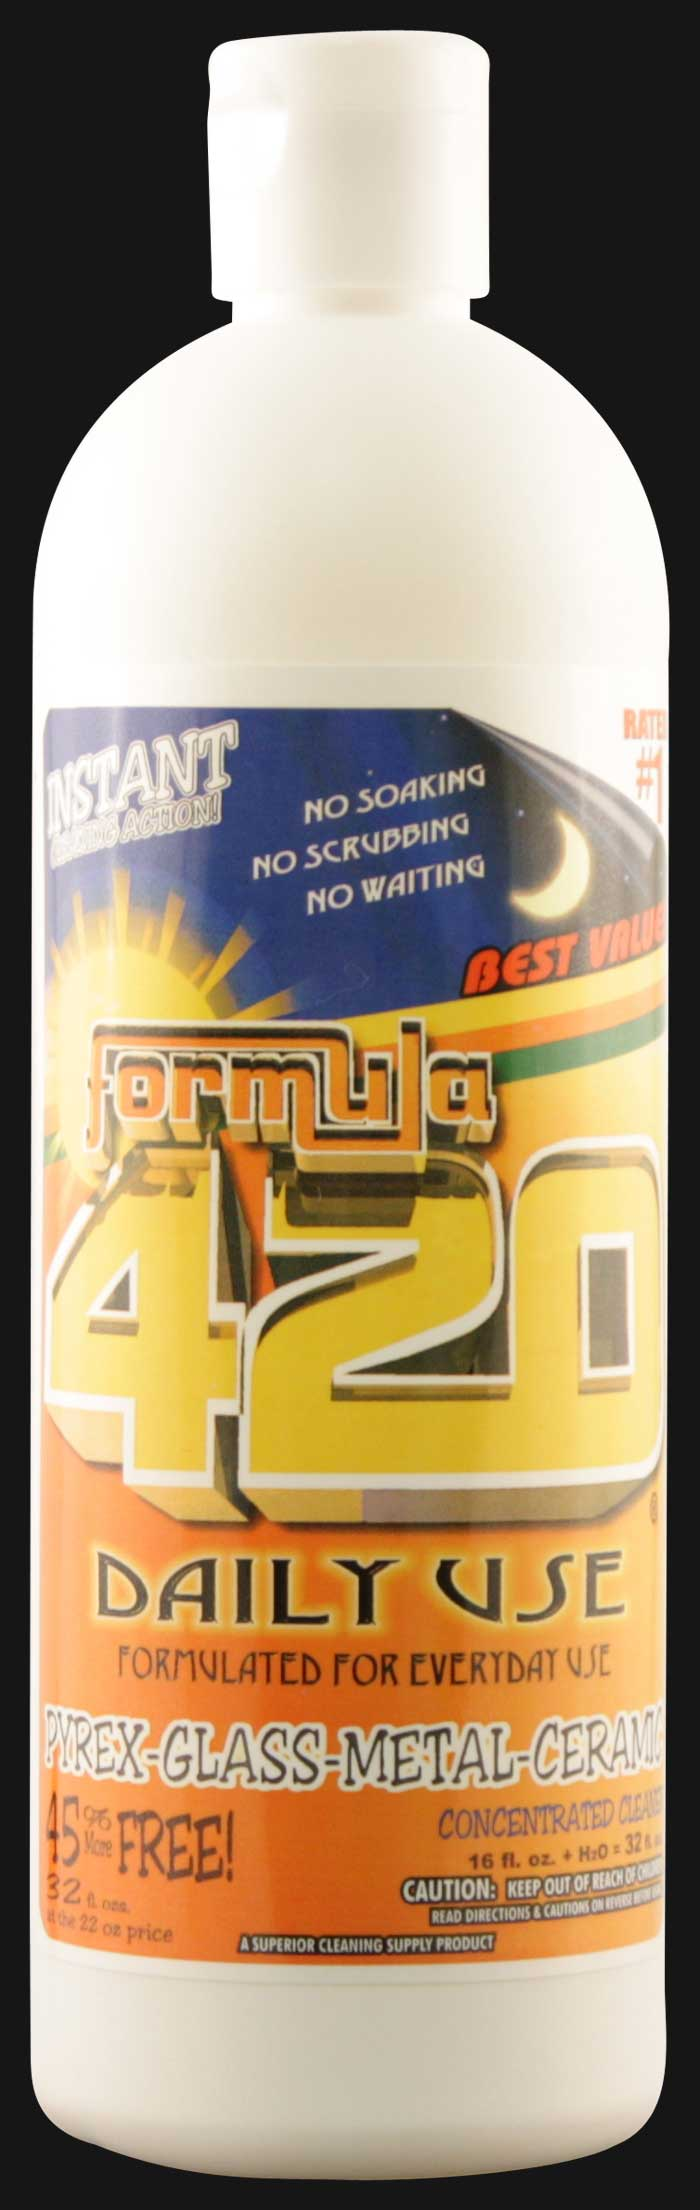 Formula 420 - Daily Use Concentrated Glass~Metal~Ceramic Pipe Cleaner 16 OZ.